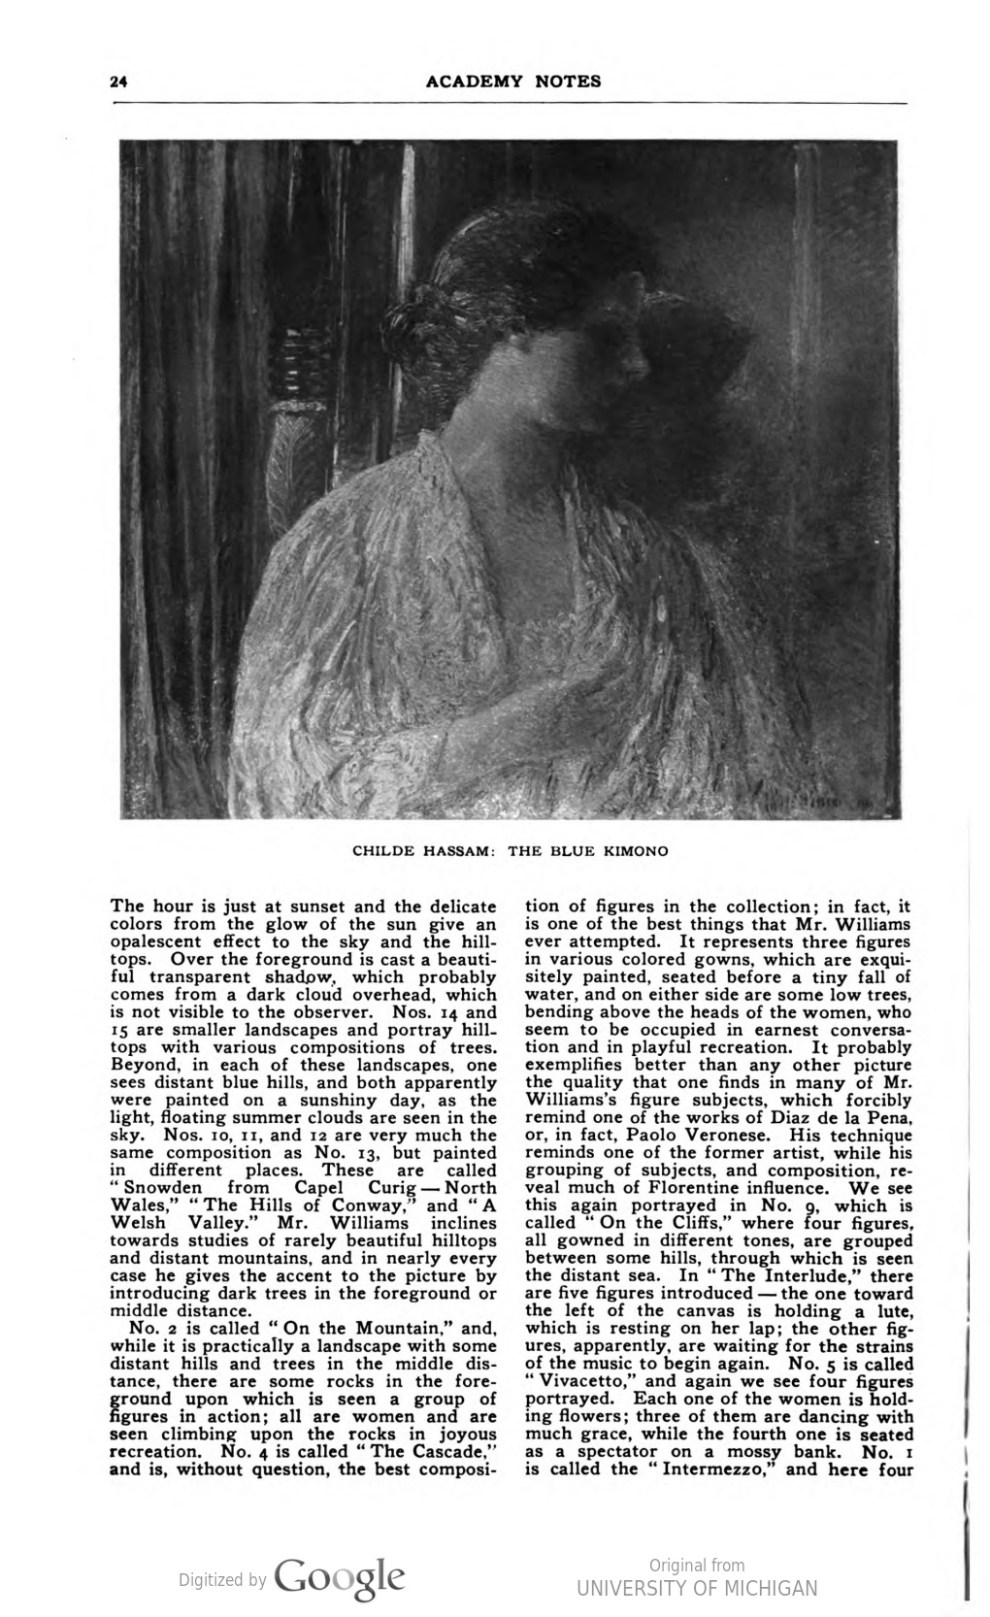 "Academy Notes, Buffalo Fine Arts Academy, Albright Art Gallery, Buffalo, NY, ""Exhibitions of Works by Emil Carlsen, Childe Hassam, and Frederick Ballard Williams"", April, 1910, Volume 5, Number 2, page 20-27, illustrated: b&w"